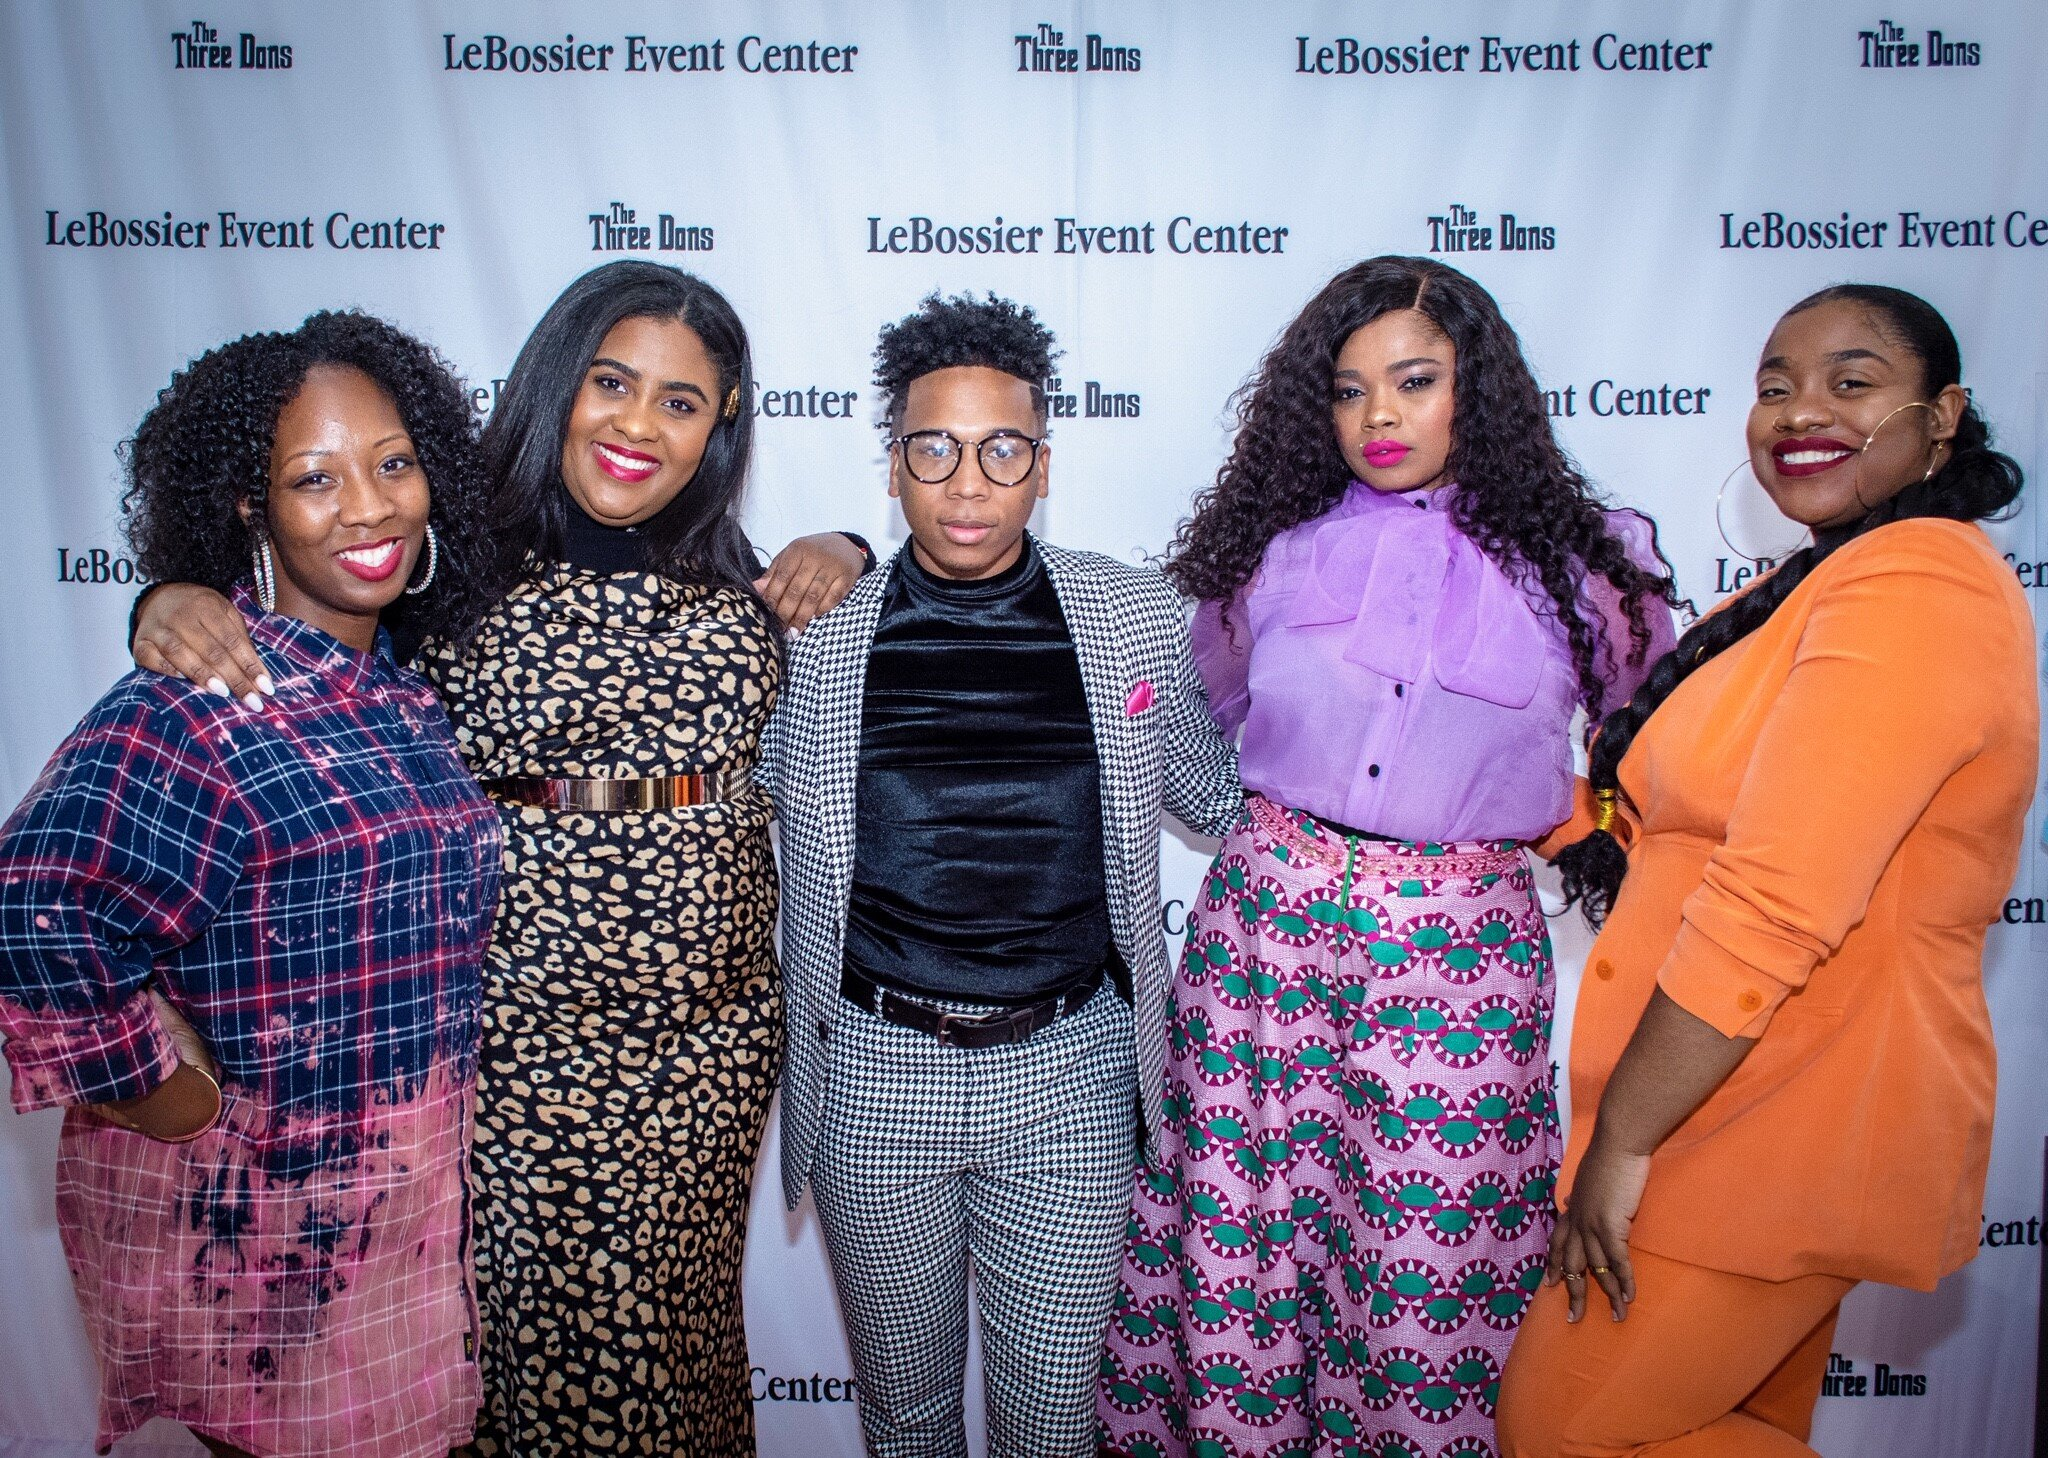 Bree of B Carroll Events, Alexis of Autumn Rose, Jaylon of J. Rachad, Niema of RNL Authentic LLC, Lydia of Looks Like LYD .  Photo by Jomaine Battles of Infinate Impressions.